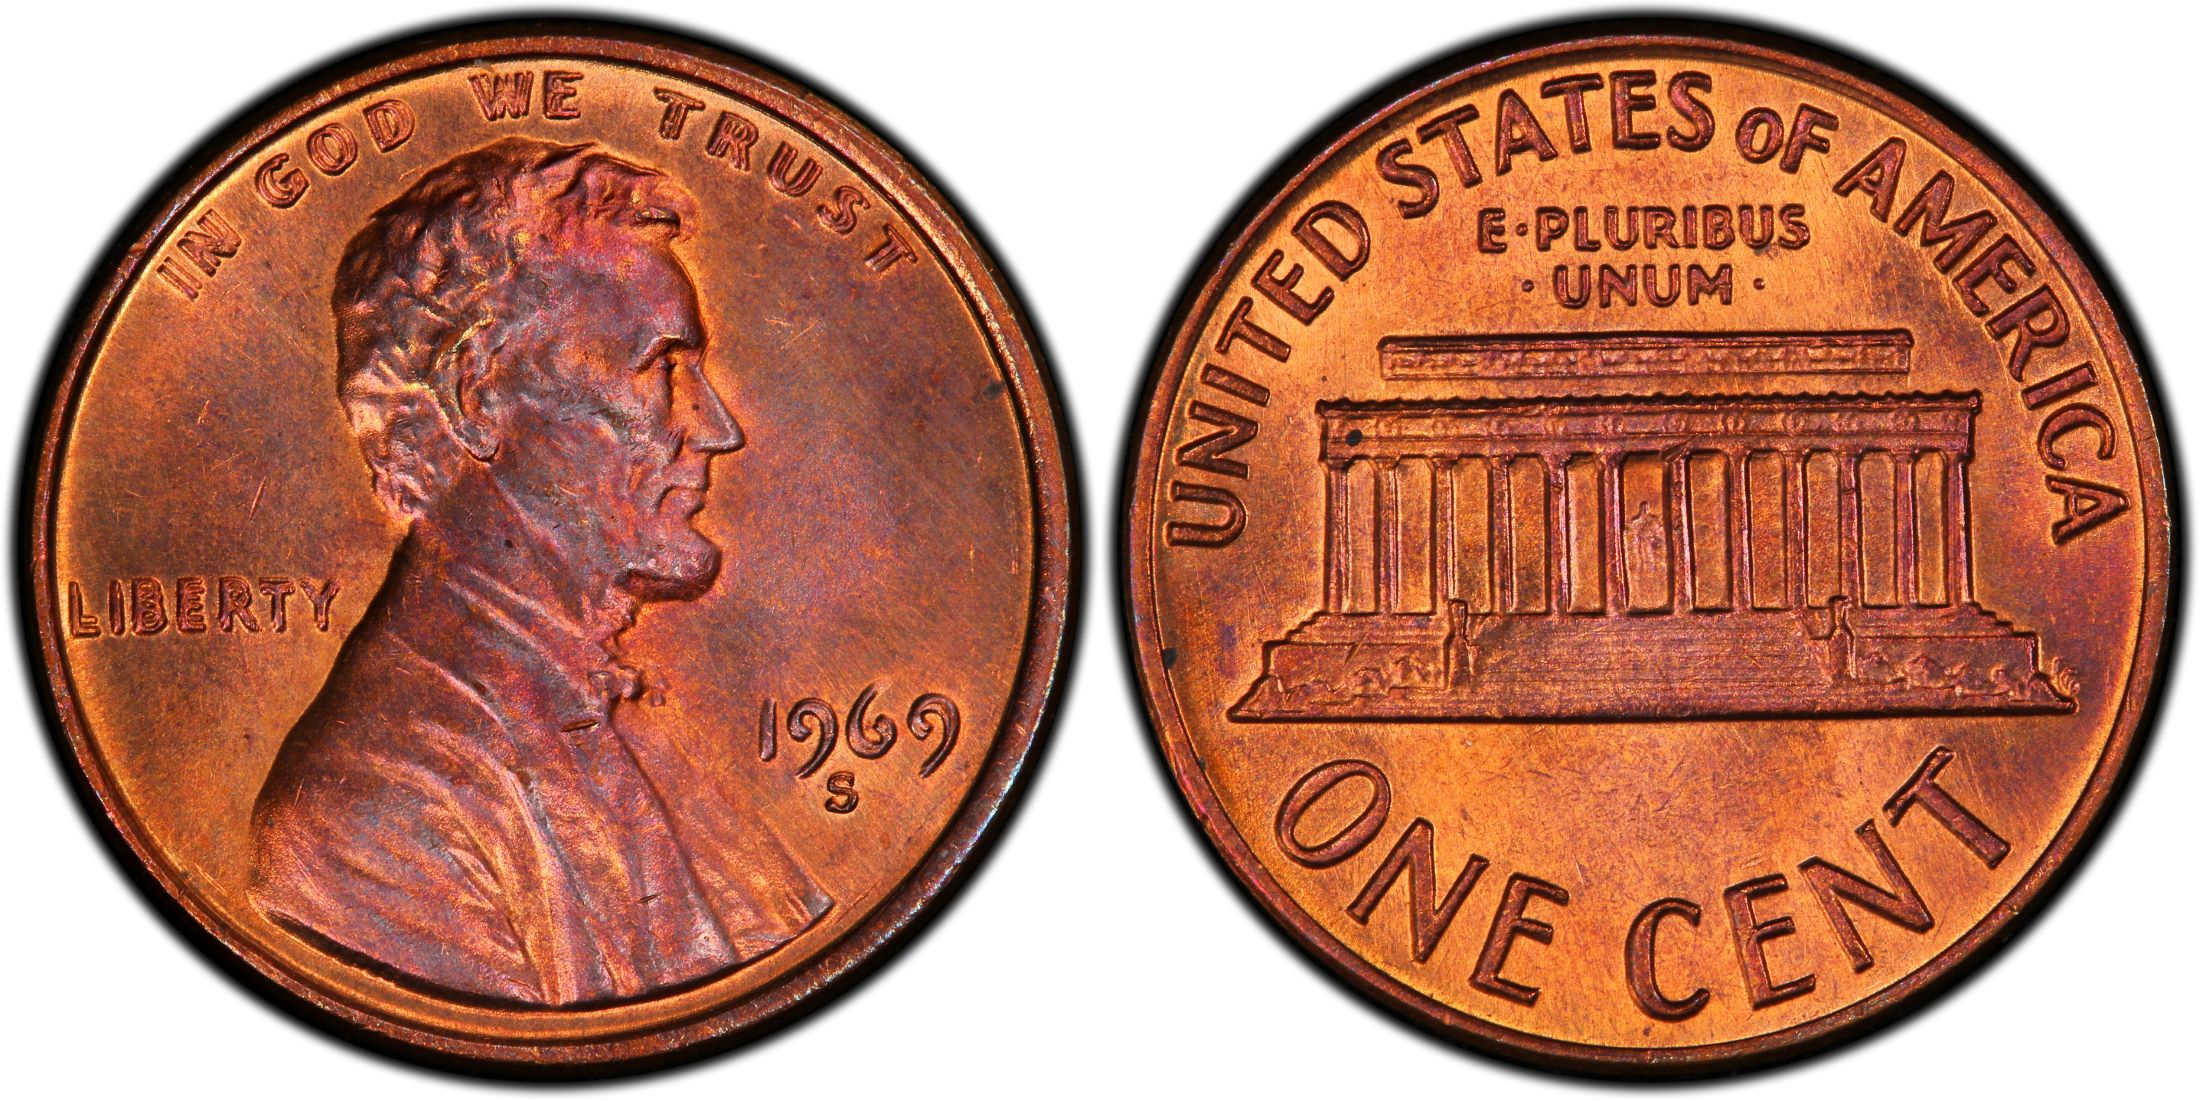 D and S 1969-P Three Lincoln Cents from mint sets